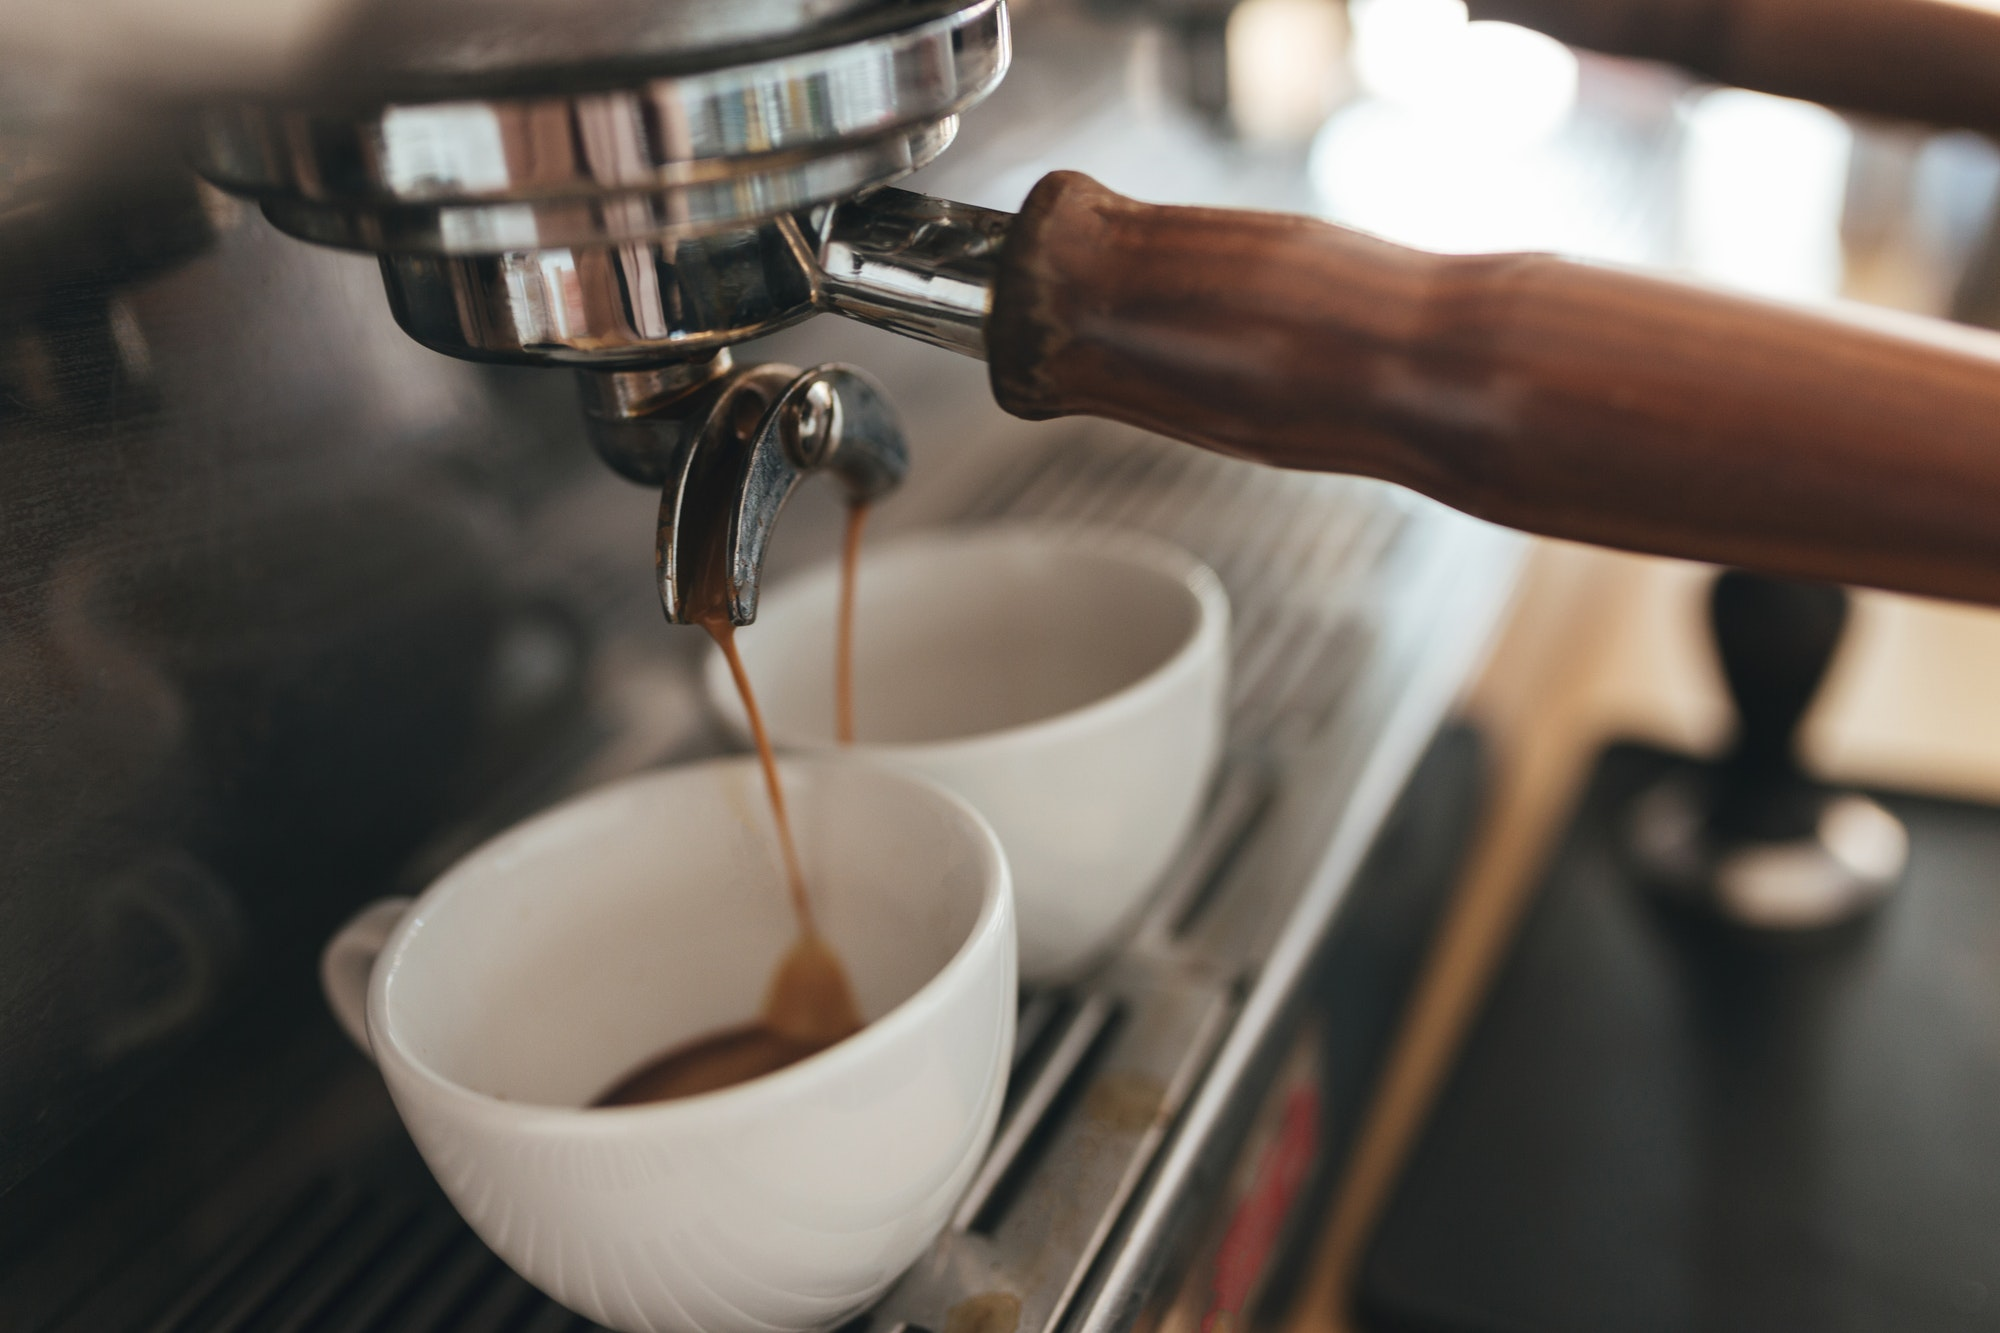 Coffee machine making coffee and pouring into white cups in coffee shop